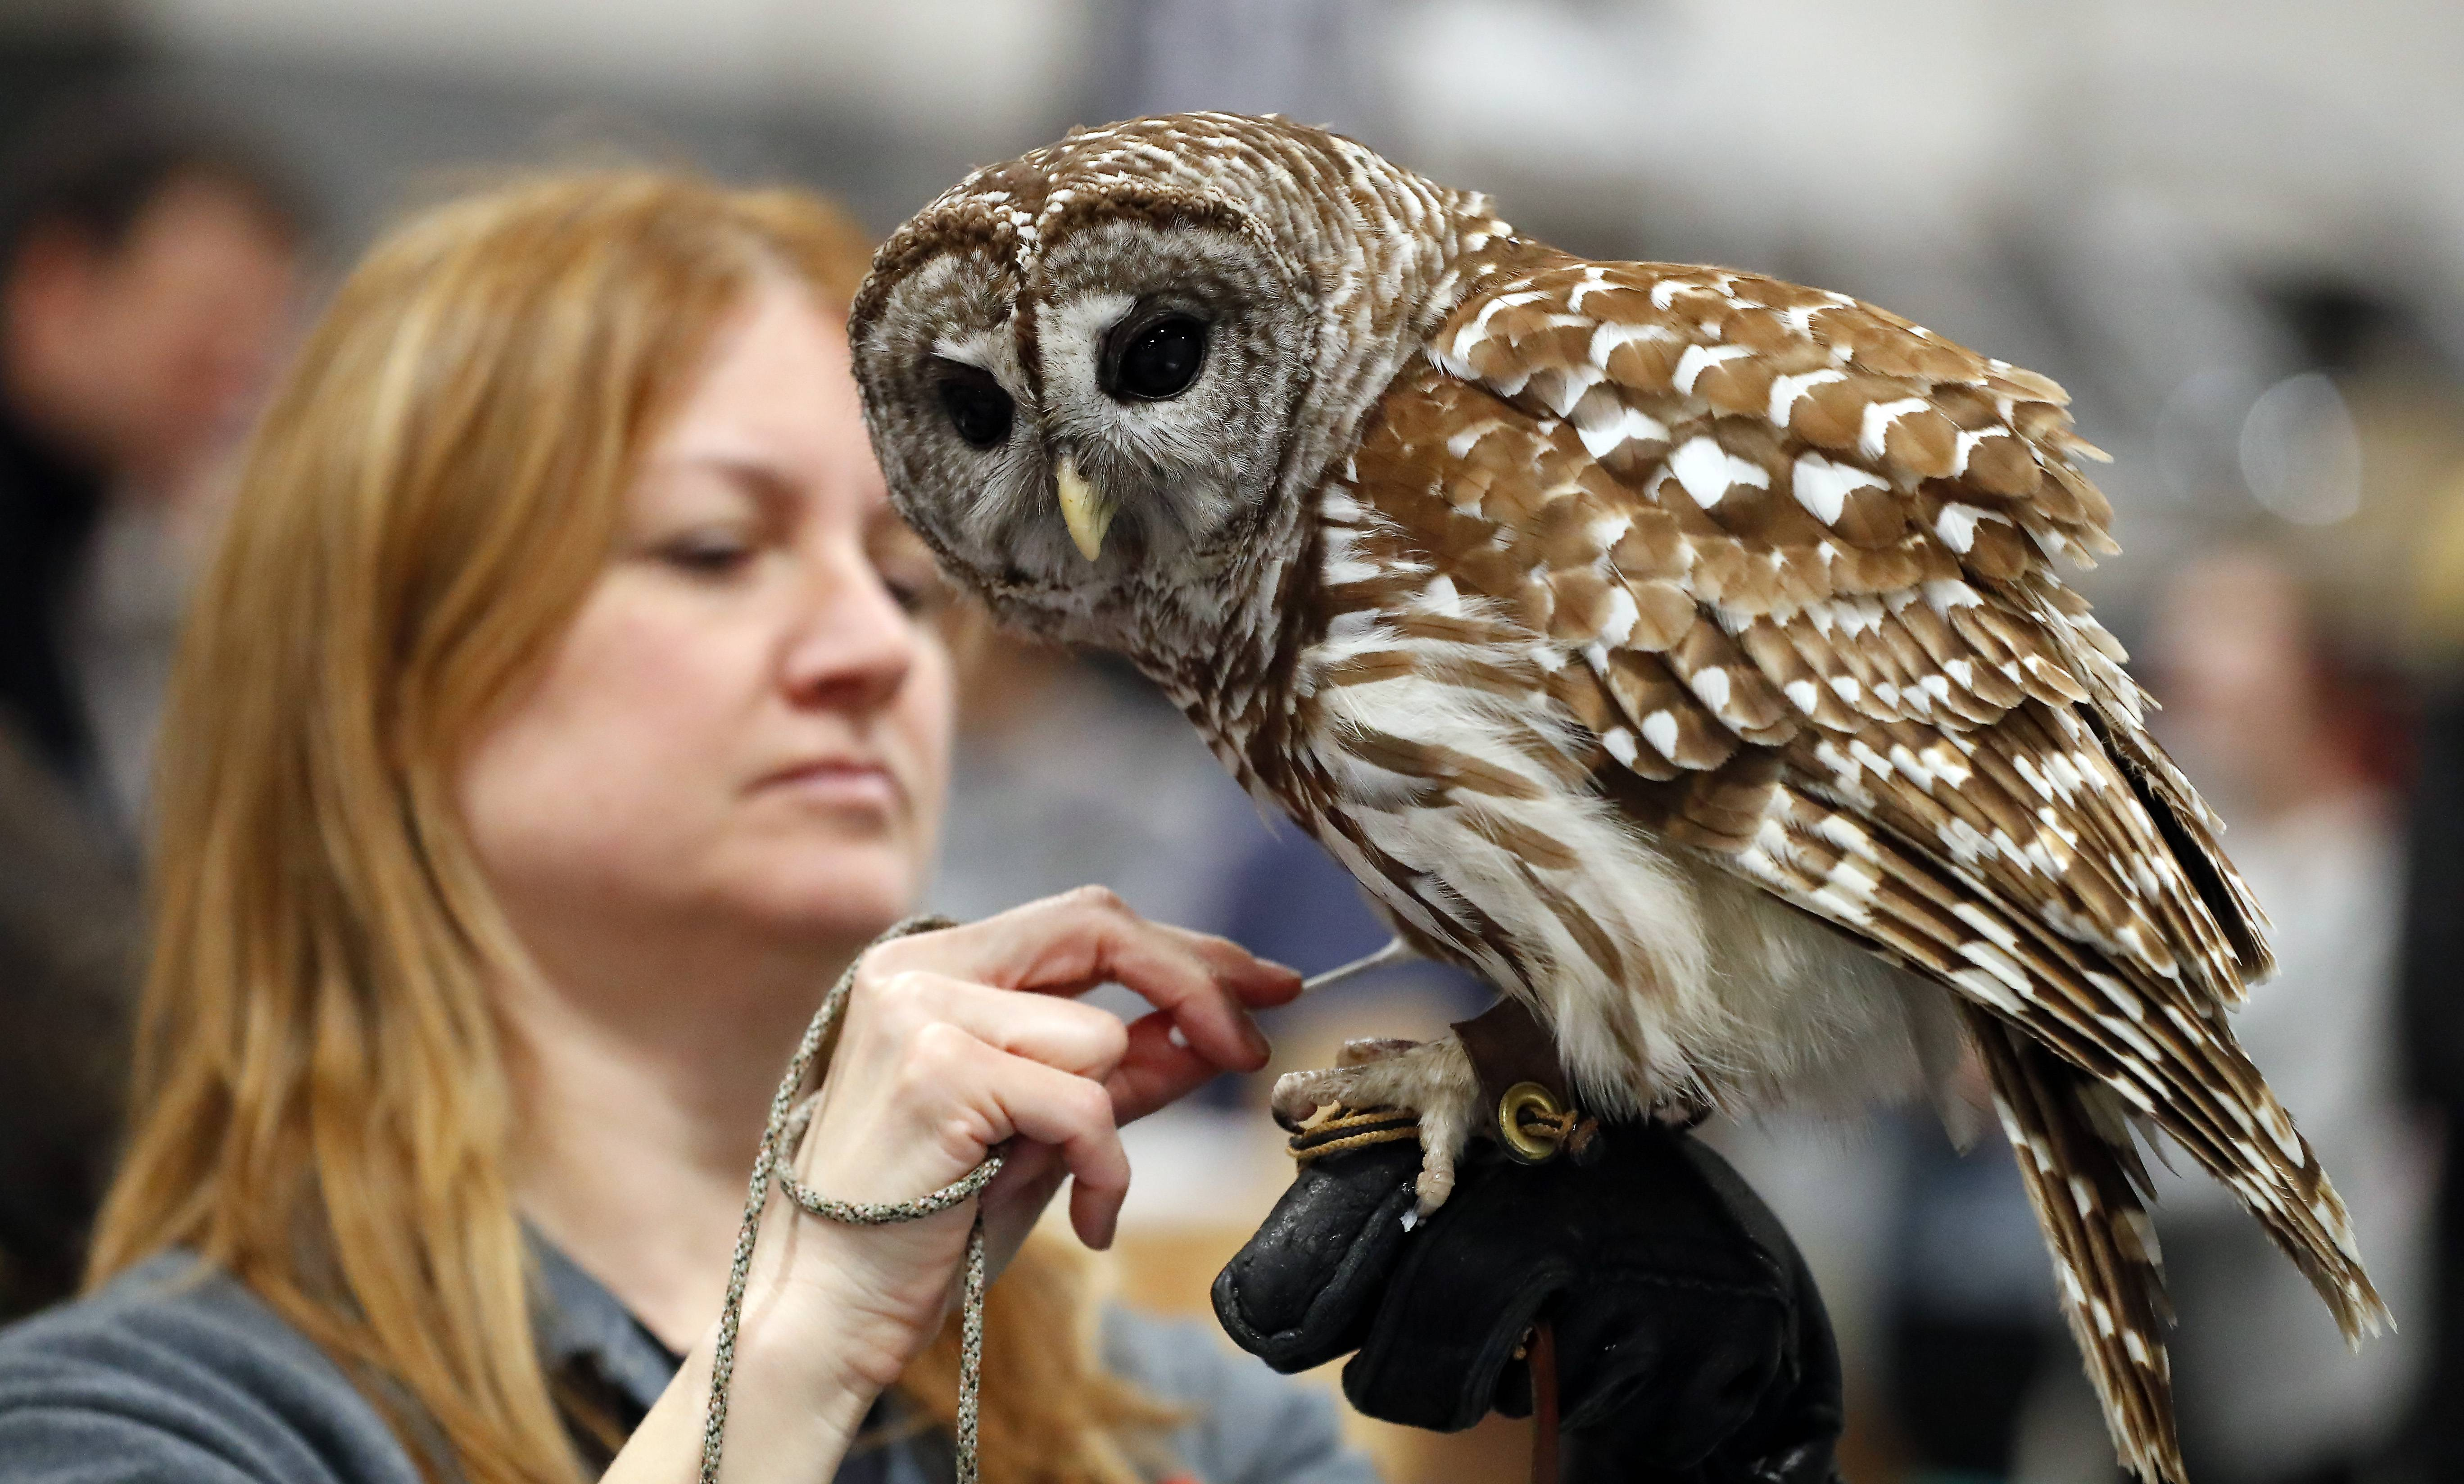 Kristi Richter of the Wings and Talons raptor education organization prepares a barred owl during the Chicagoland Fishing, Travel & Outdoor Expo Sunday at the Renaissance Schaumburg Convention Center.